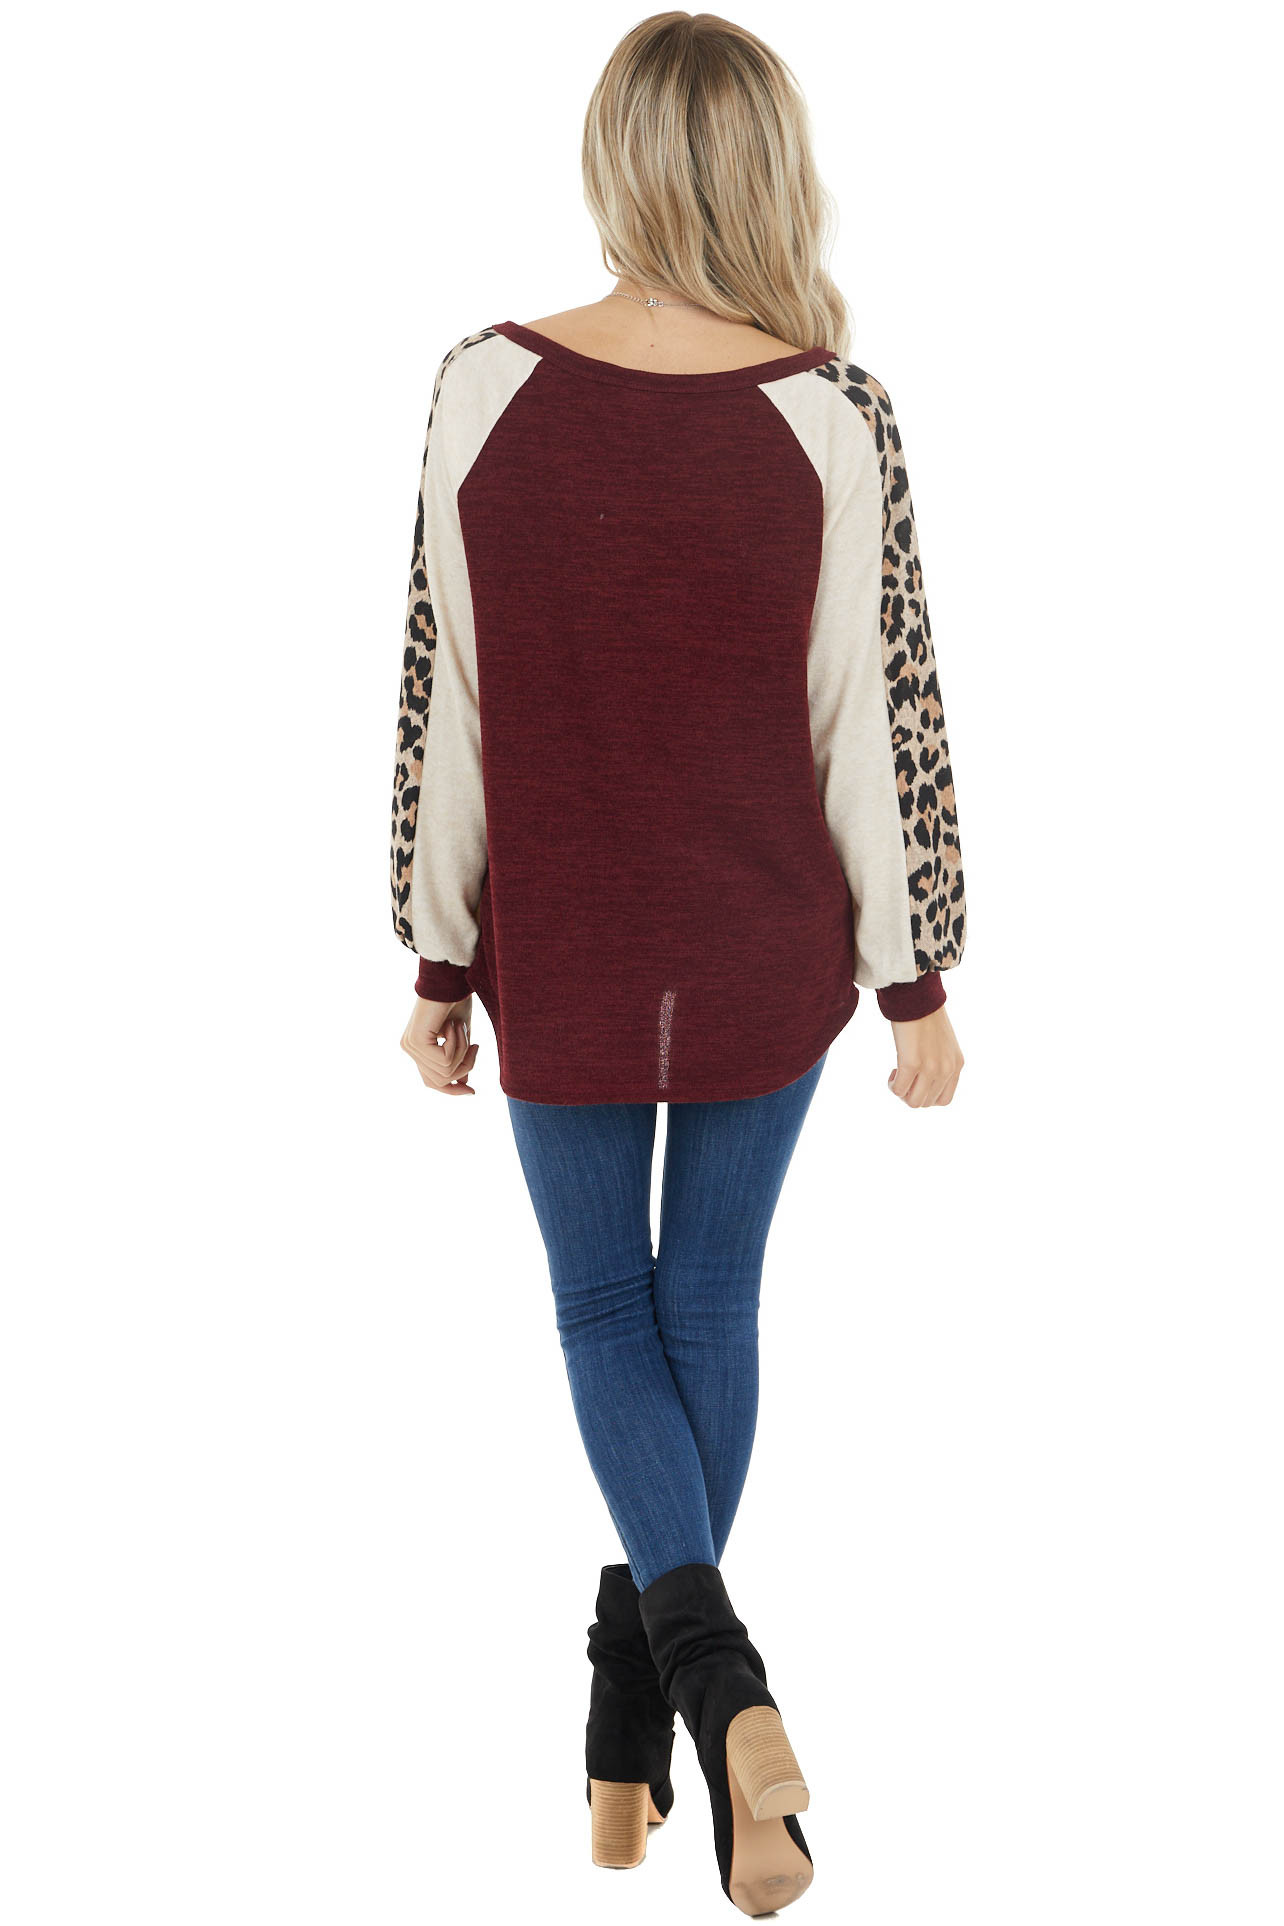 Burgundy and Oatmeal Long Sleeve Top with Leopard Detail